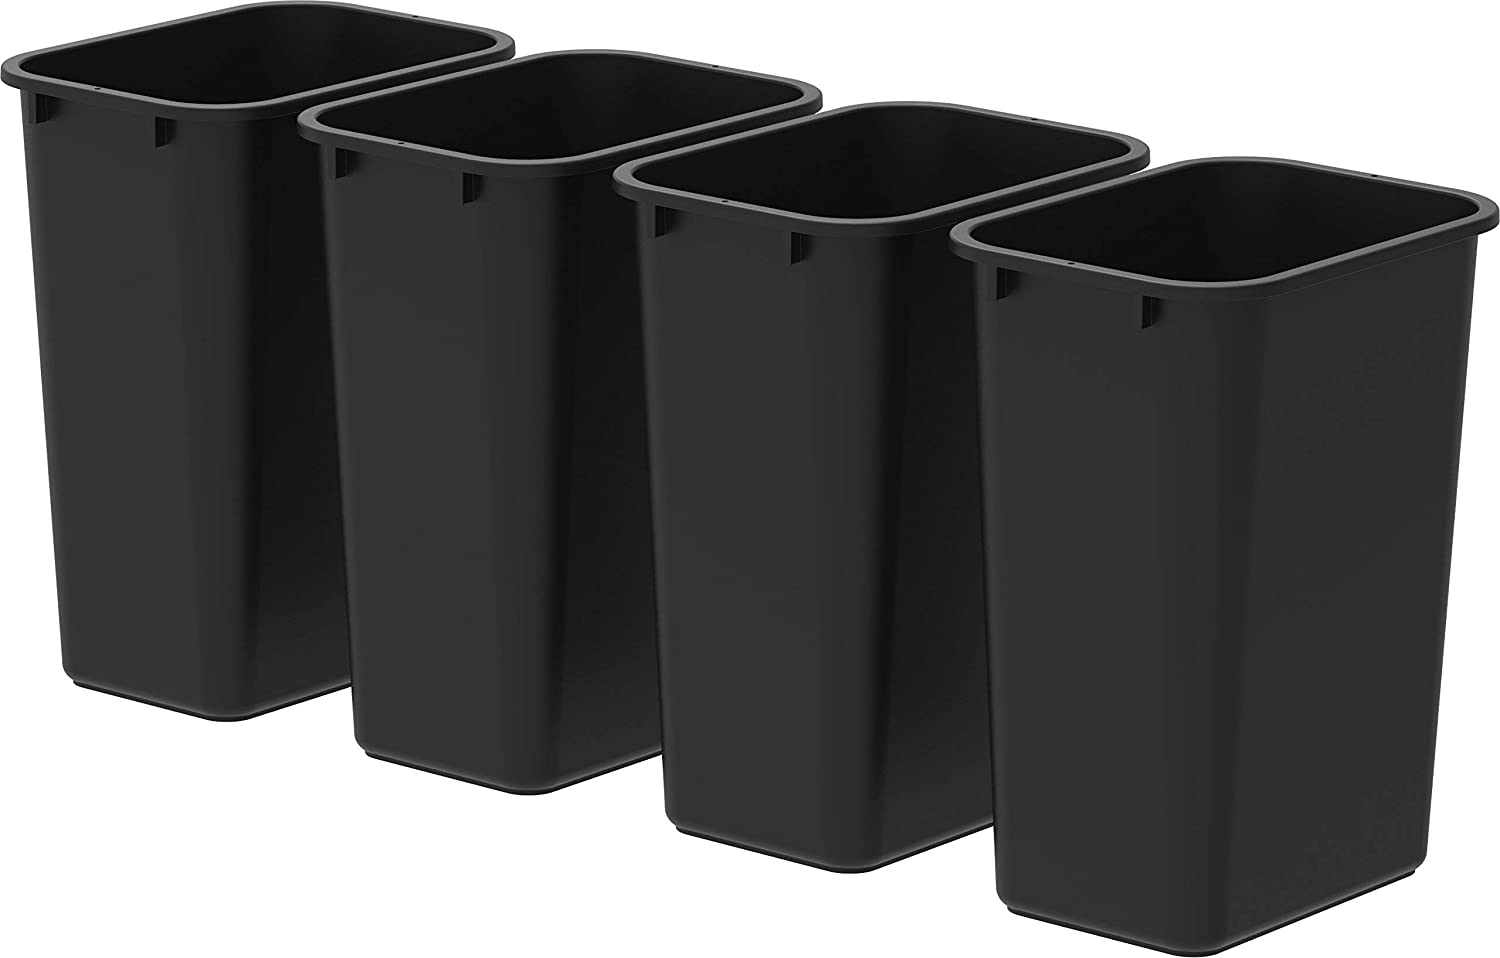 Large Japan's largest assortment Tall Waste Basket 15.5 x Import Case 11 o Inches 20.75 Black